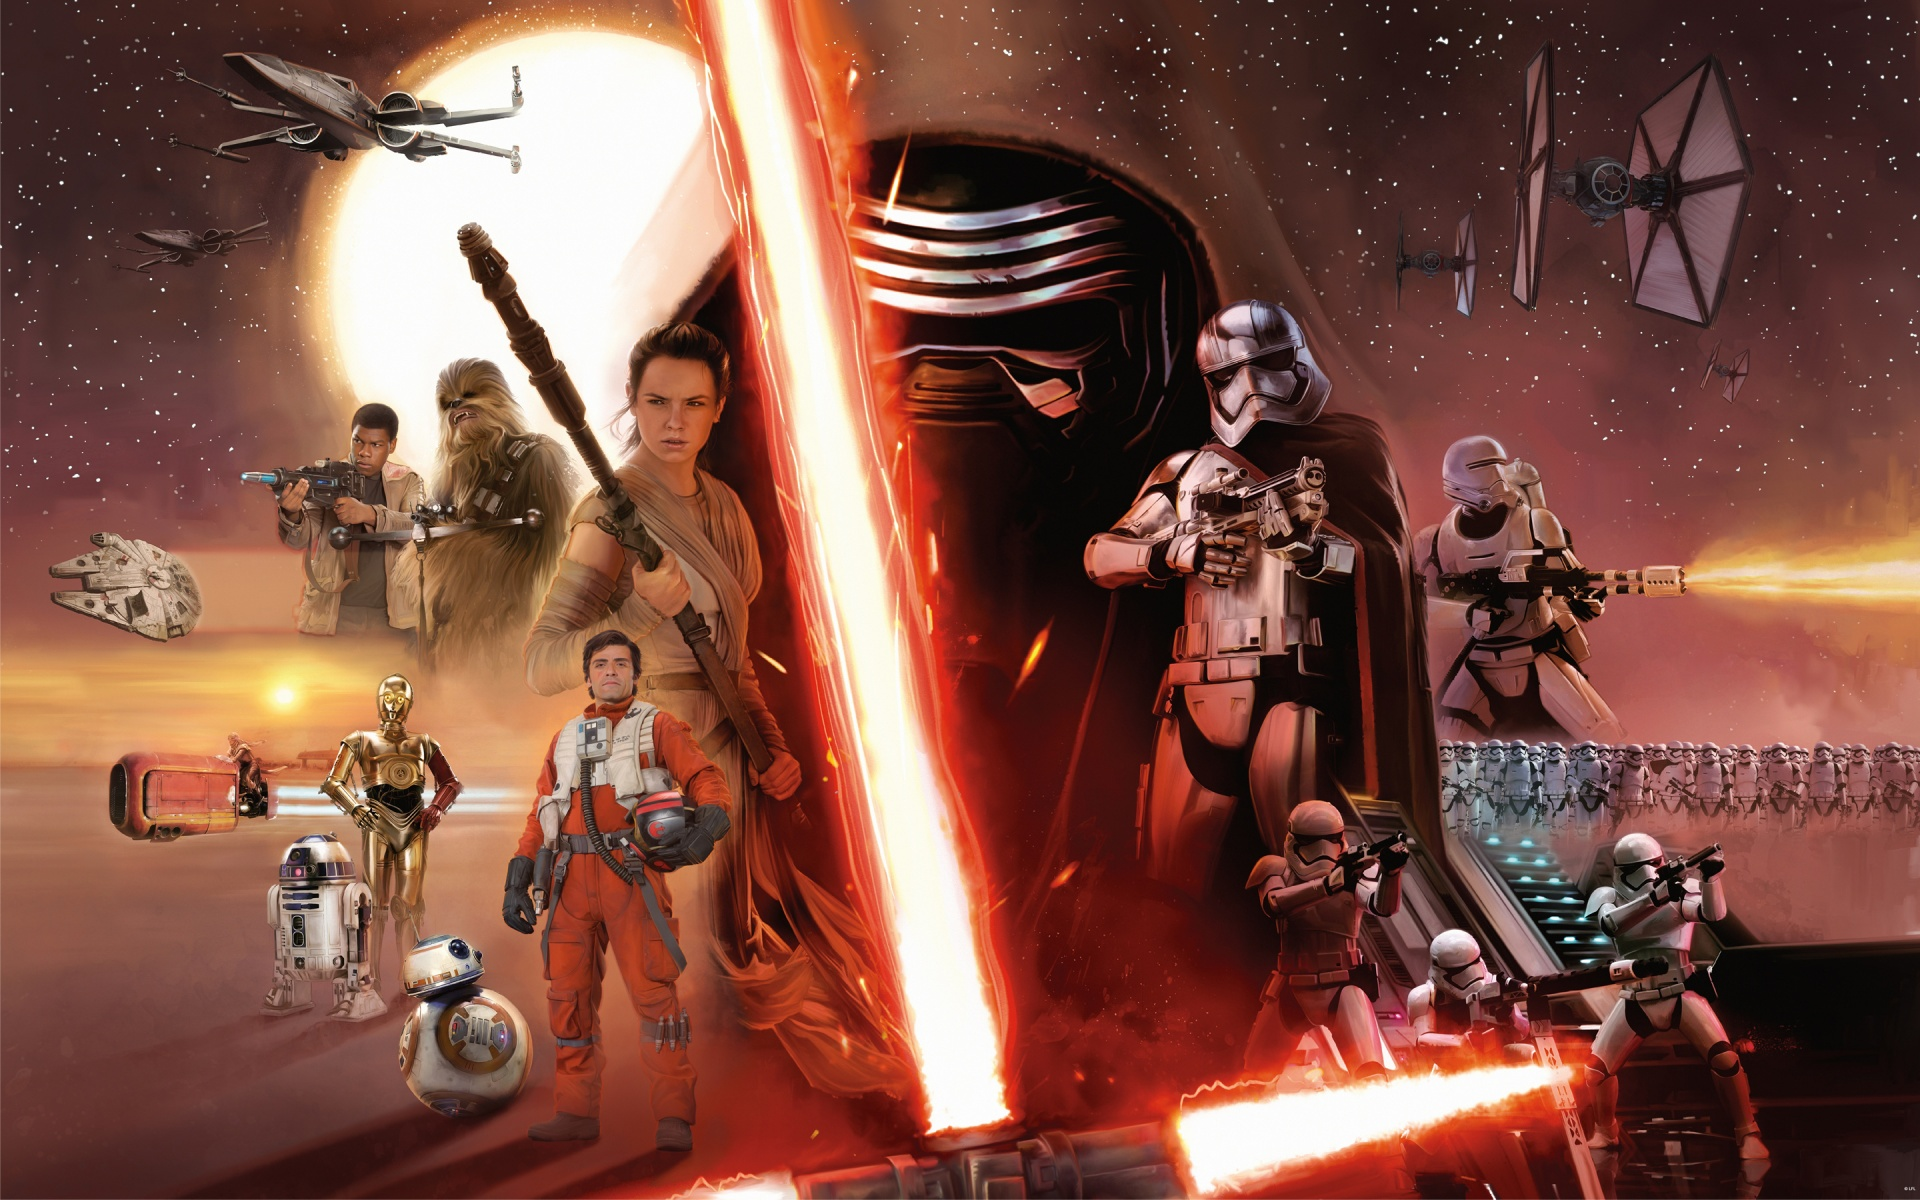 star wars episode 7 the force awakens wallpapers in jpg format for